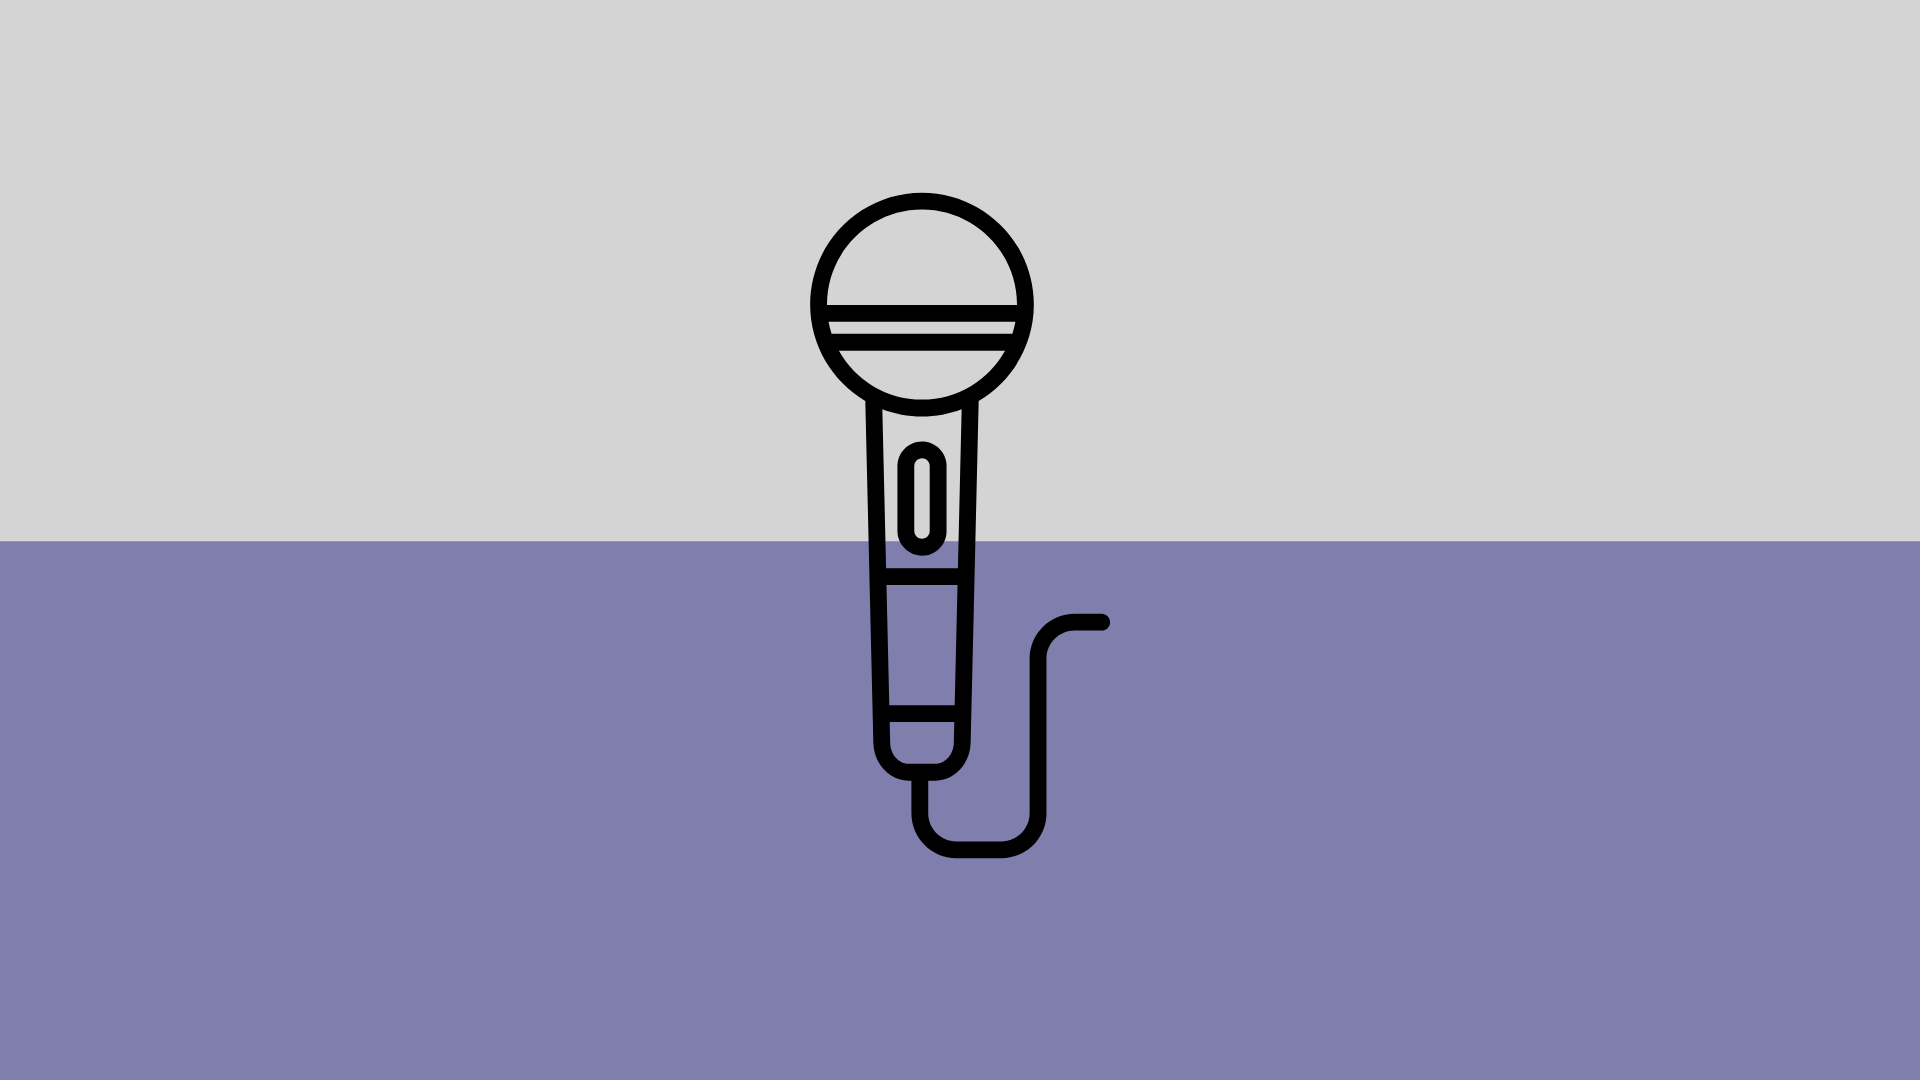 Line art of a microphone over purple and grey background